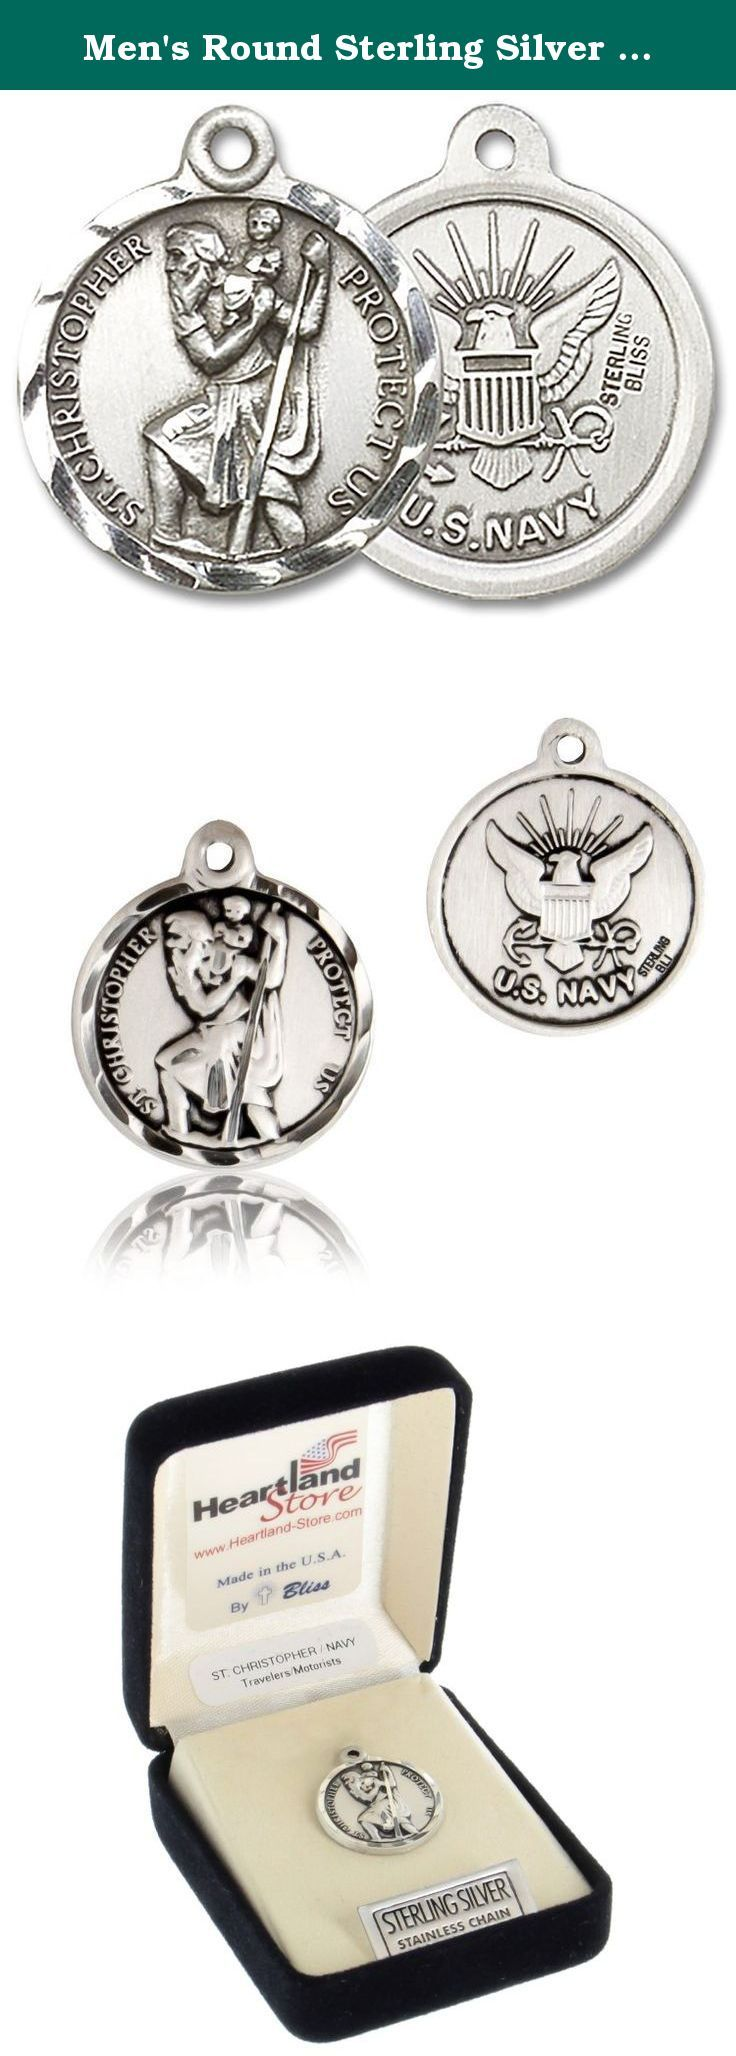 """Men's Round Sterling Silver St. Christopher Navy Medal - Pendant Only. This St. Christopher round Navy Medal is a great addition to anybody who is in the Navy or would like to protect a loved one. The front of the medal depicts an image of St. Christopher with the words around the image reading """"St. Christopher Protect Us"""". The back of the medal depicts the U.S Navy emblem. Select above which chain style you want from the style options above: * 24 inch chain with clasp * a 24 inch endless..."""